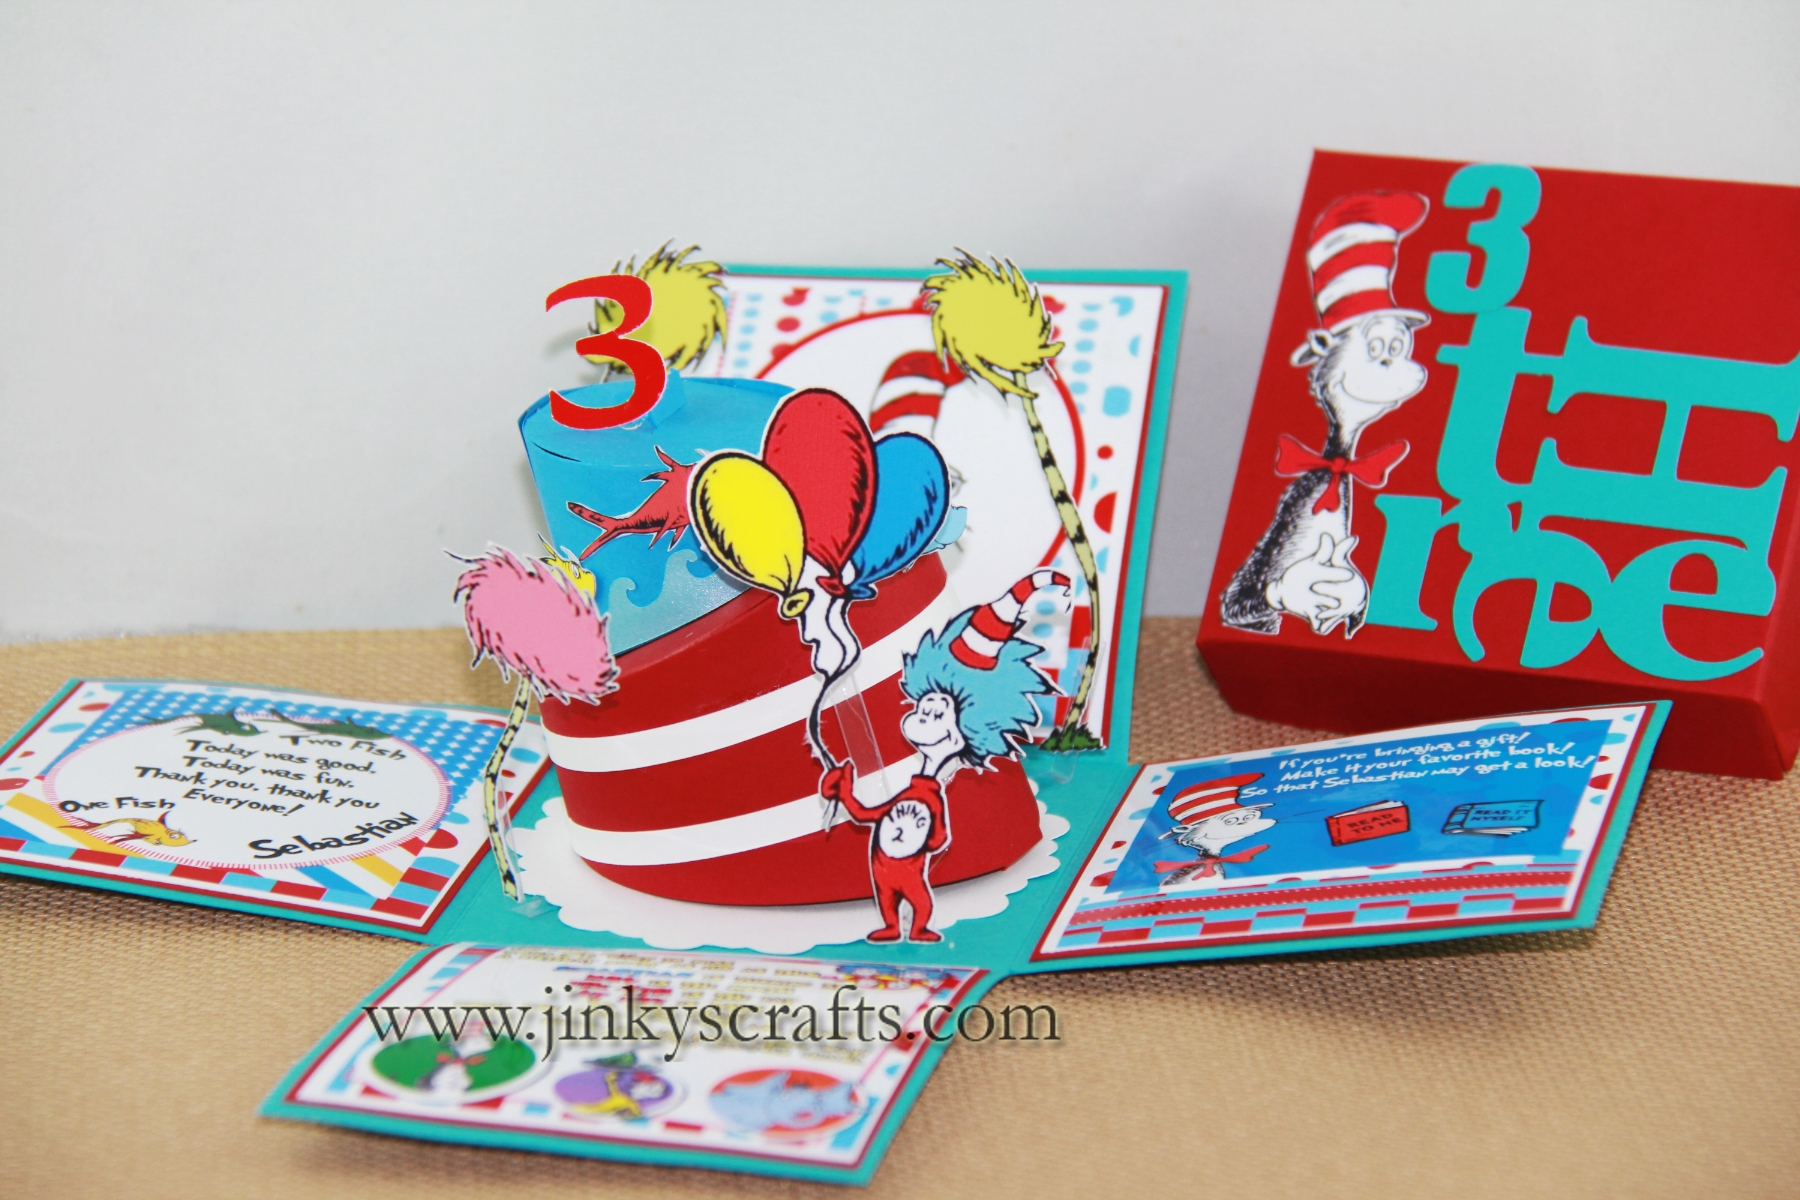 DR. SEUSS BIRTHDAY BOX INVITATIONS - Jinkys Crafts